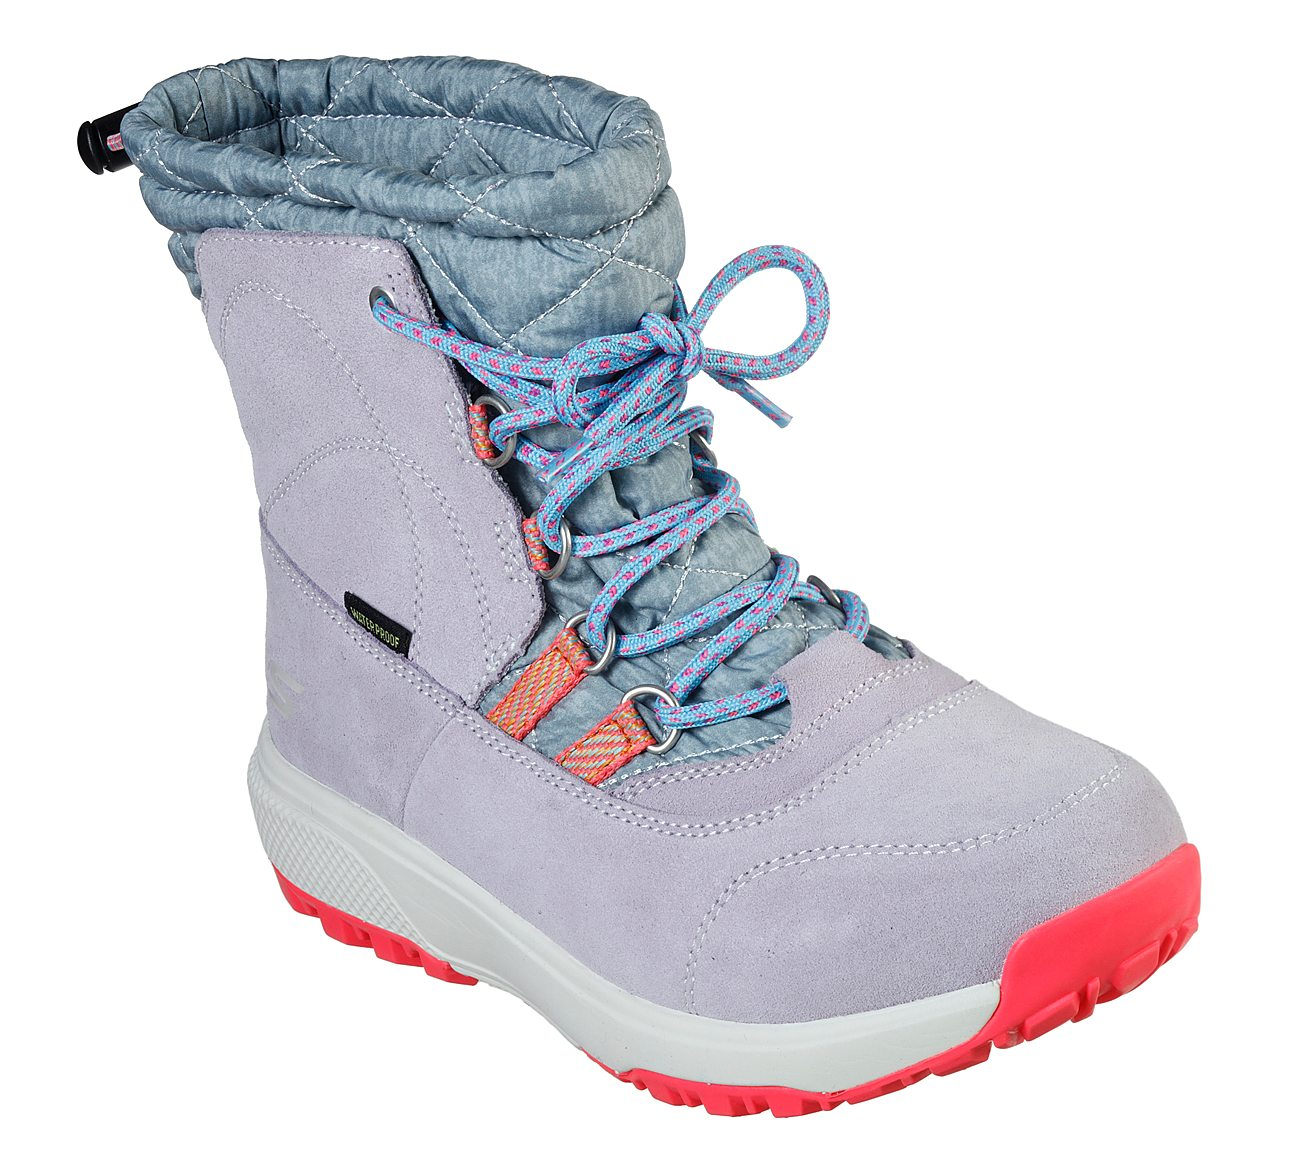 Skechers On the GO Outdoors Ultra - Arctic Chills